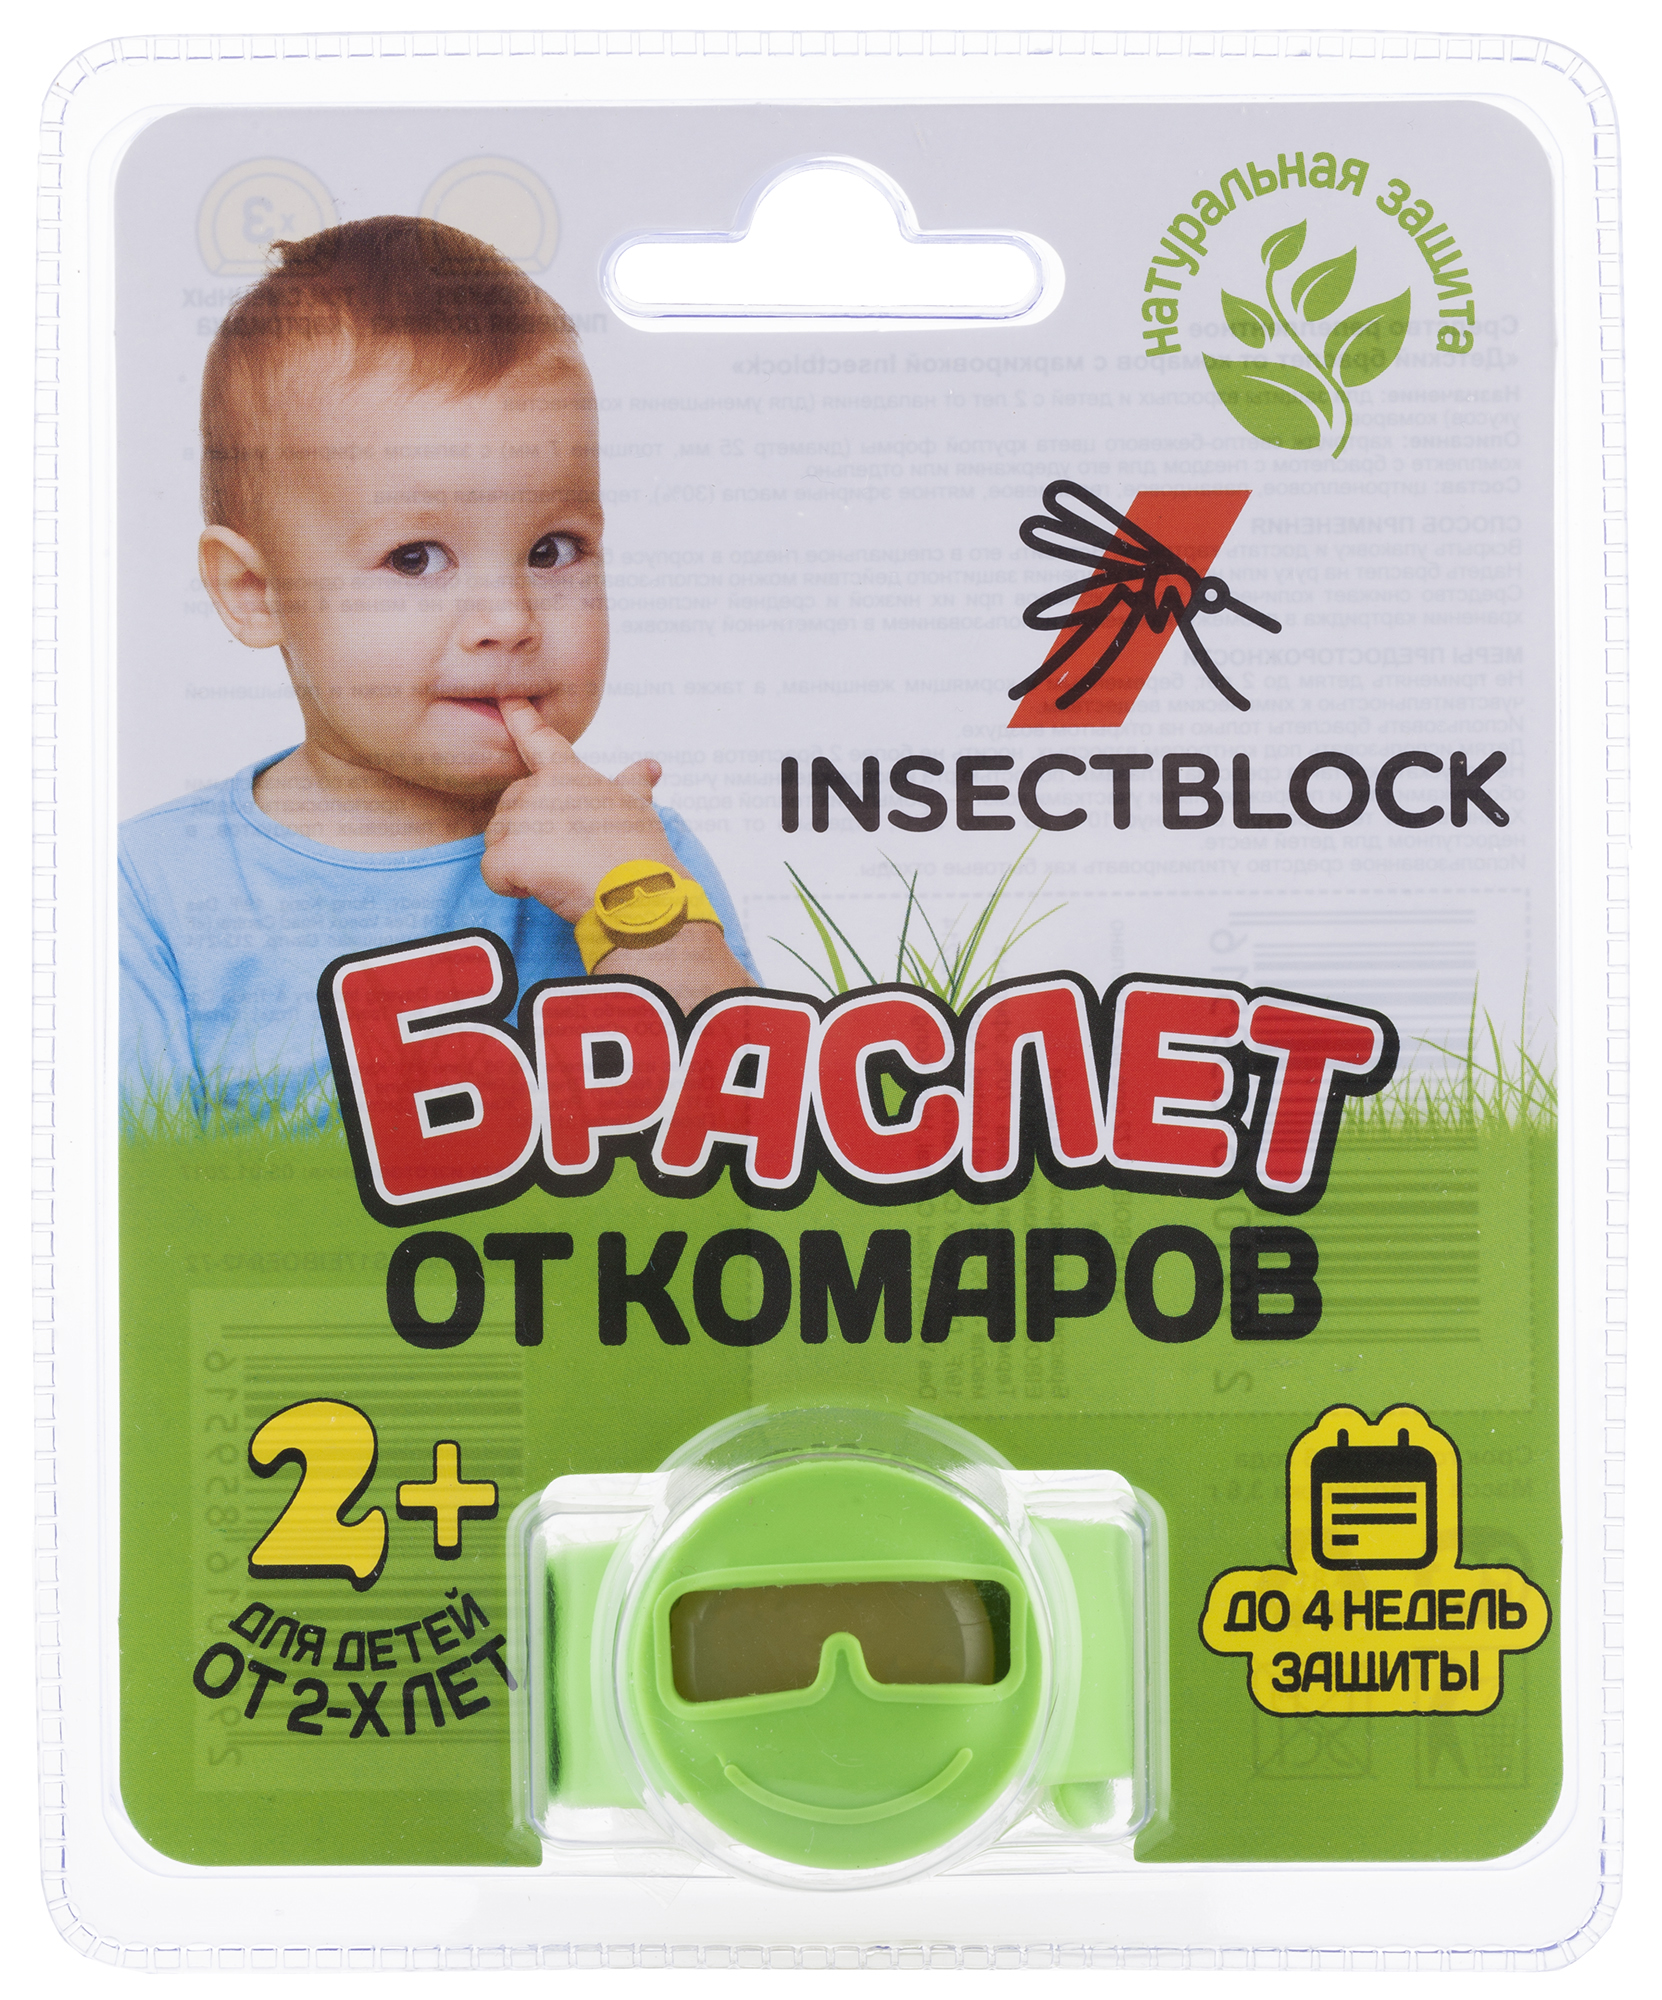 no brand Браслет от комаров детский Insectblock multi in one windproof butane jet lighter w knife scissors nail file